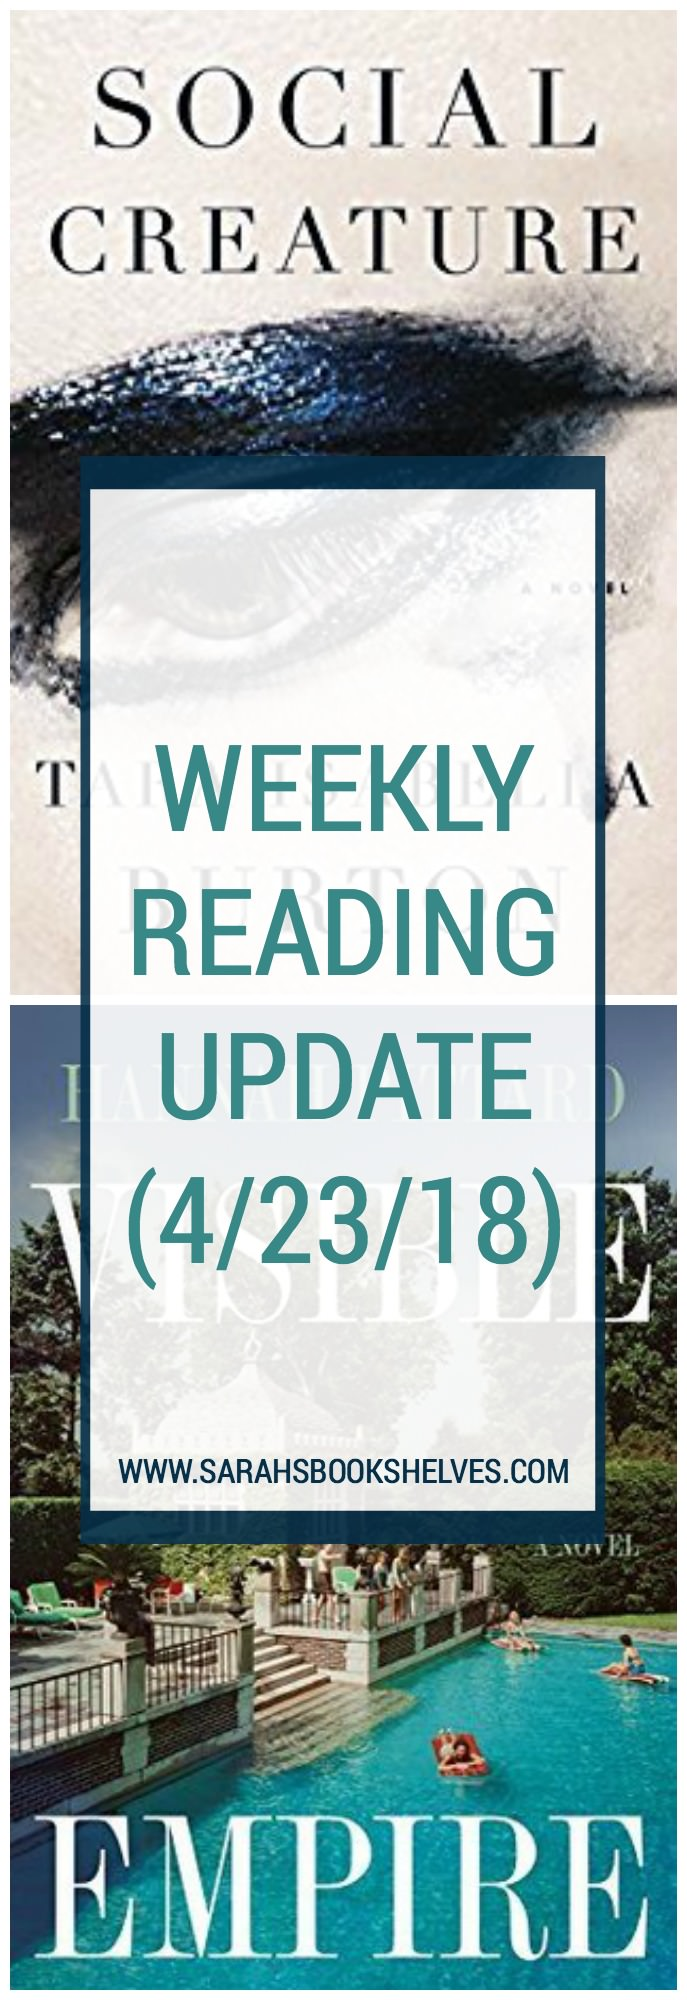 Weekly Reading Update (4/23/18): I've got two books to add to your summer reading list...Social Creature by Tara Isabella Burton and Visible Empire by Hannah Pittard. #reading #books #bookish #bookworm #booklover